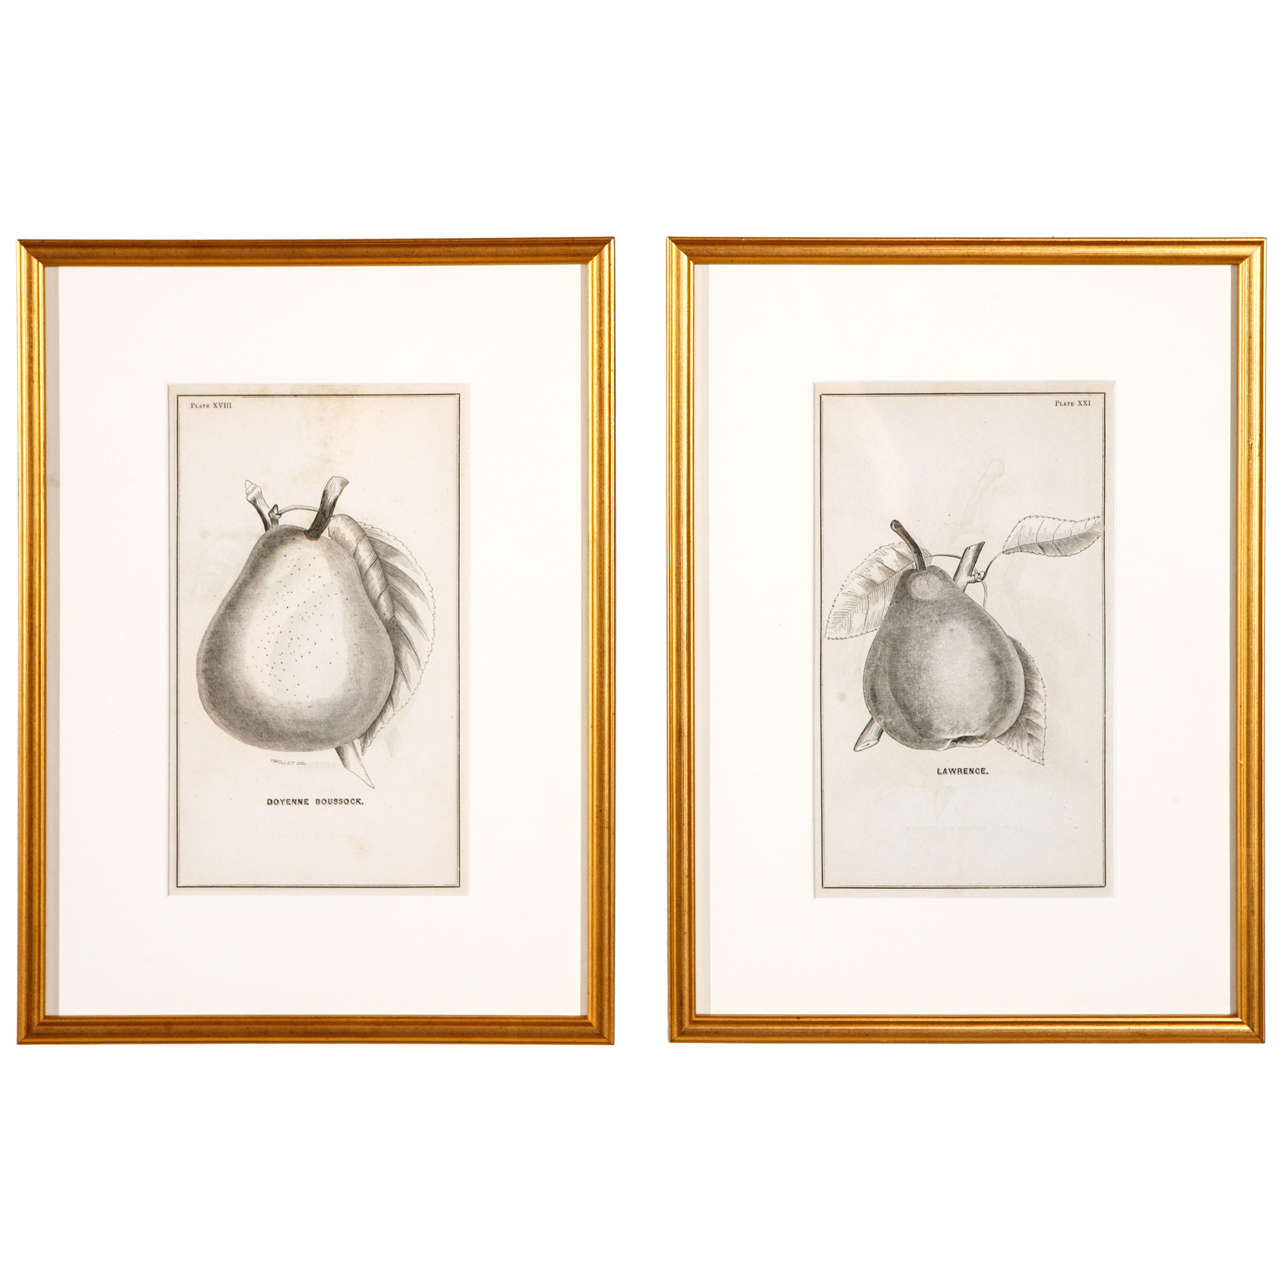 Gold Framed Pear Botanicals from 19th Century Catalogue